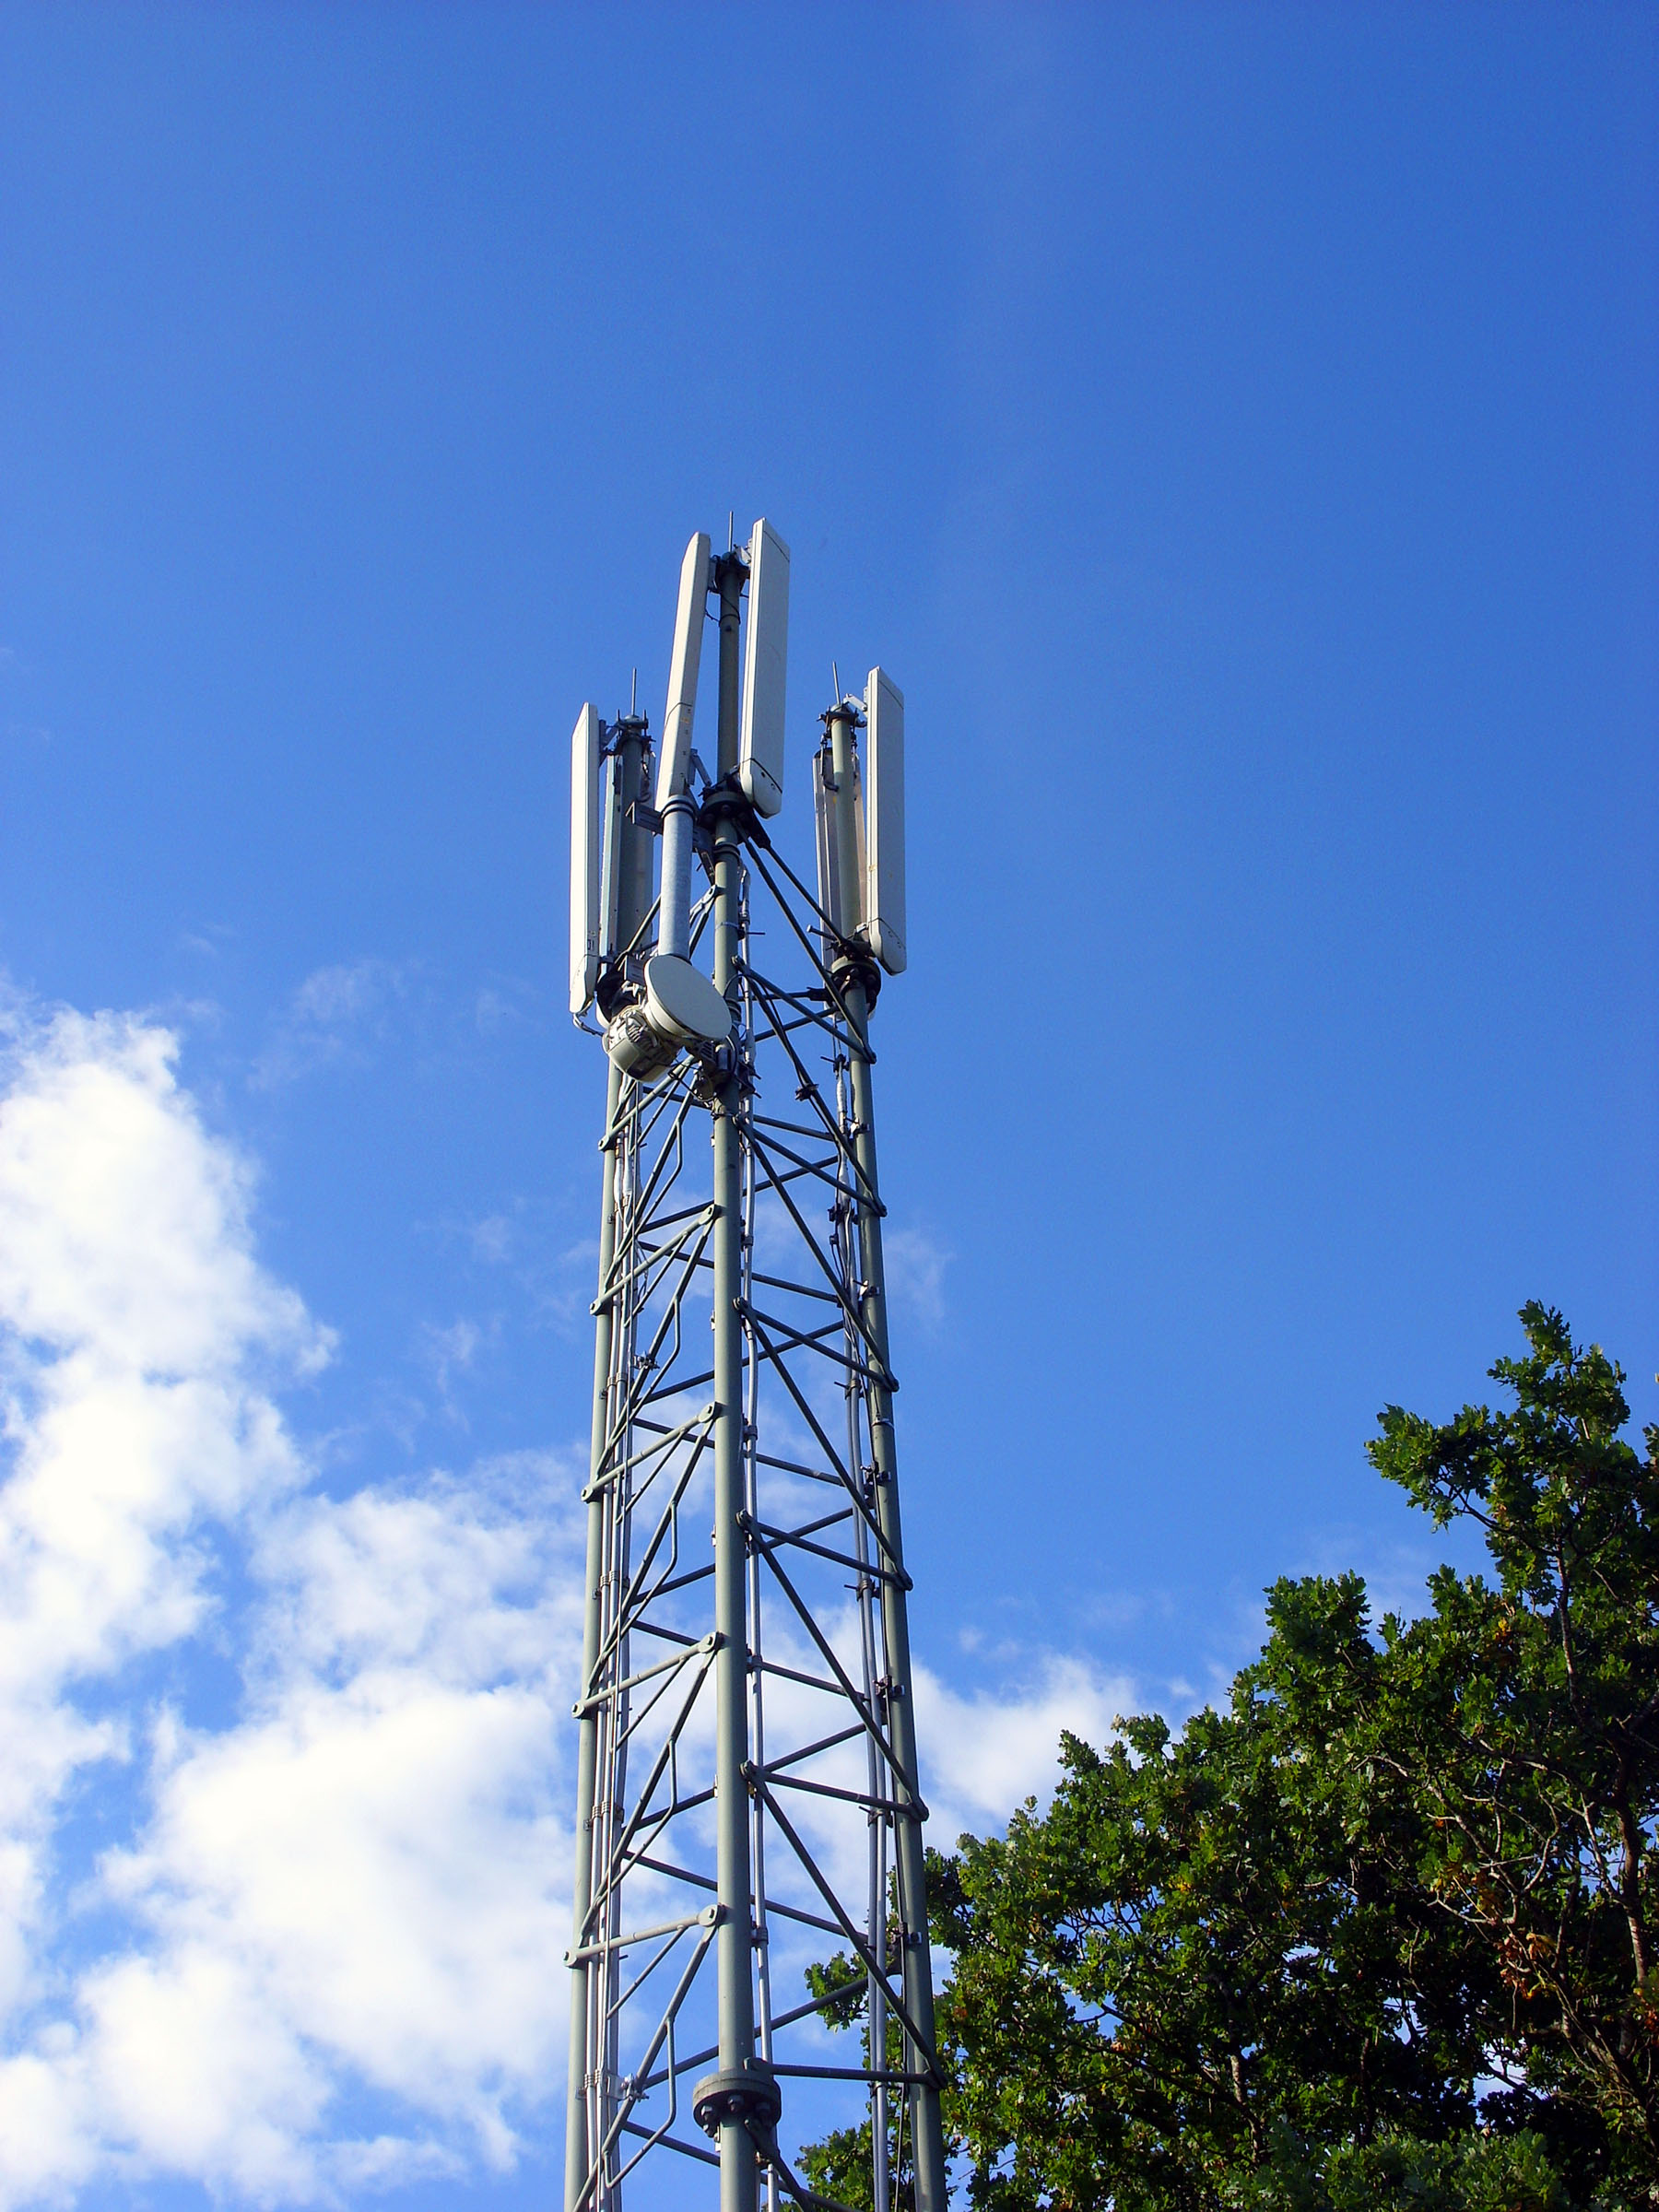 Mobile phone mast, Cell, Cellular, Communications, Elements, HQ Photo